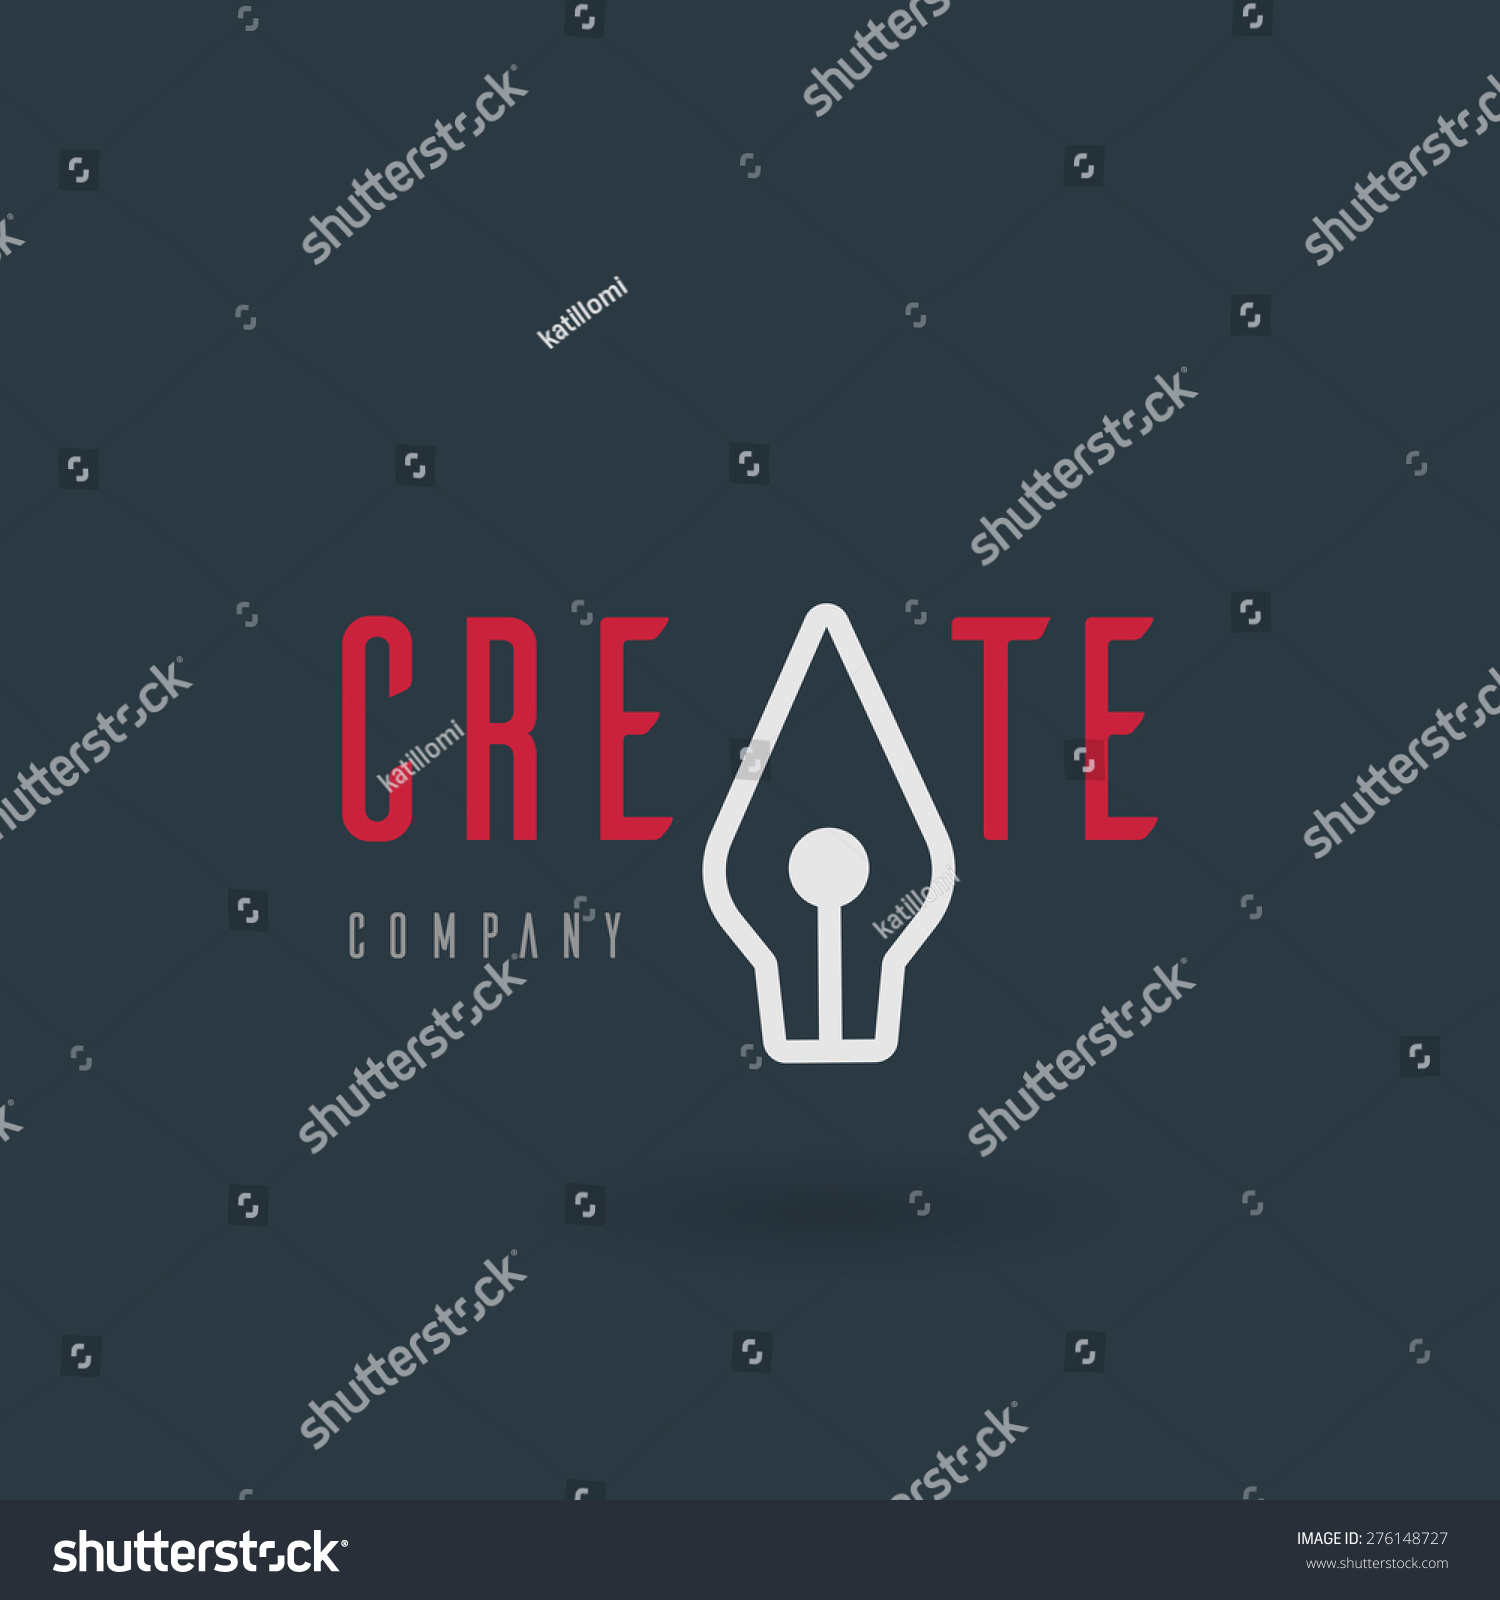 Vector graphic illustration fountain pen symbol stock vector vector graphic illustration of a fountain pen symbol with sample text for your company biocorpaavc Choice Image